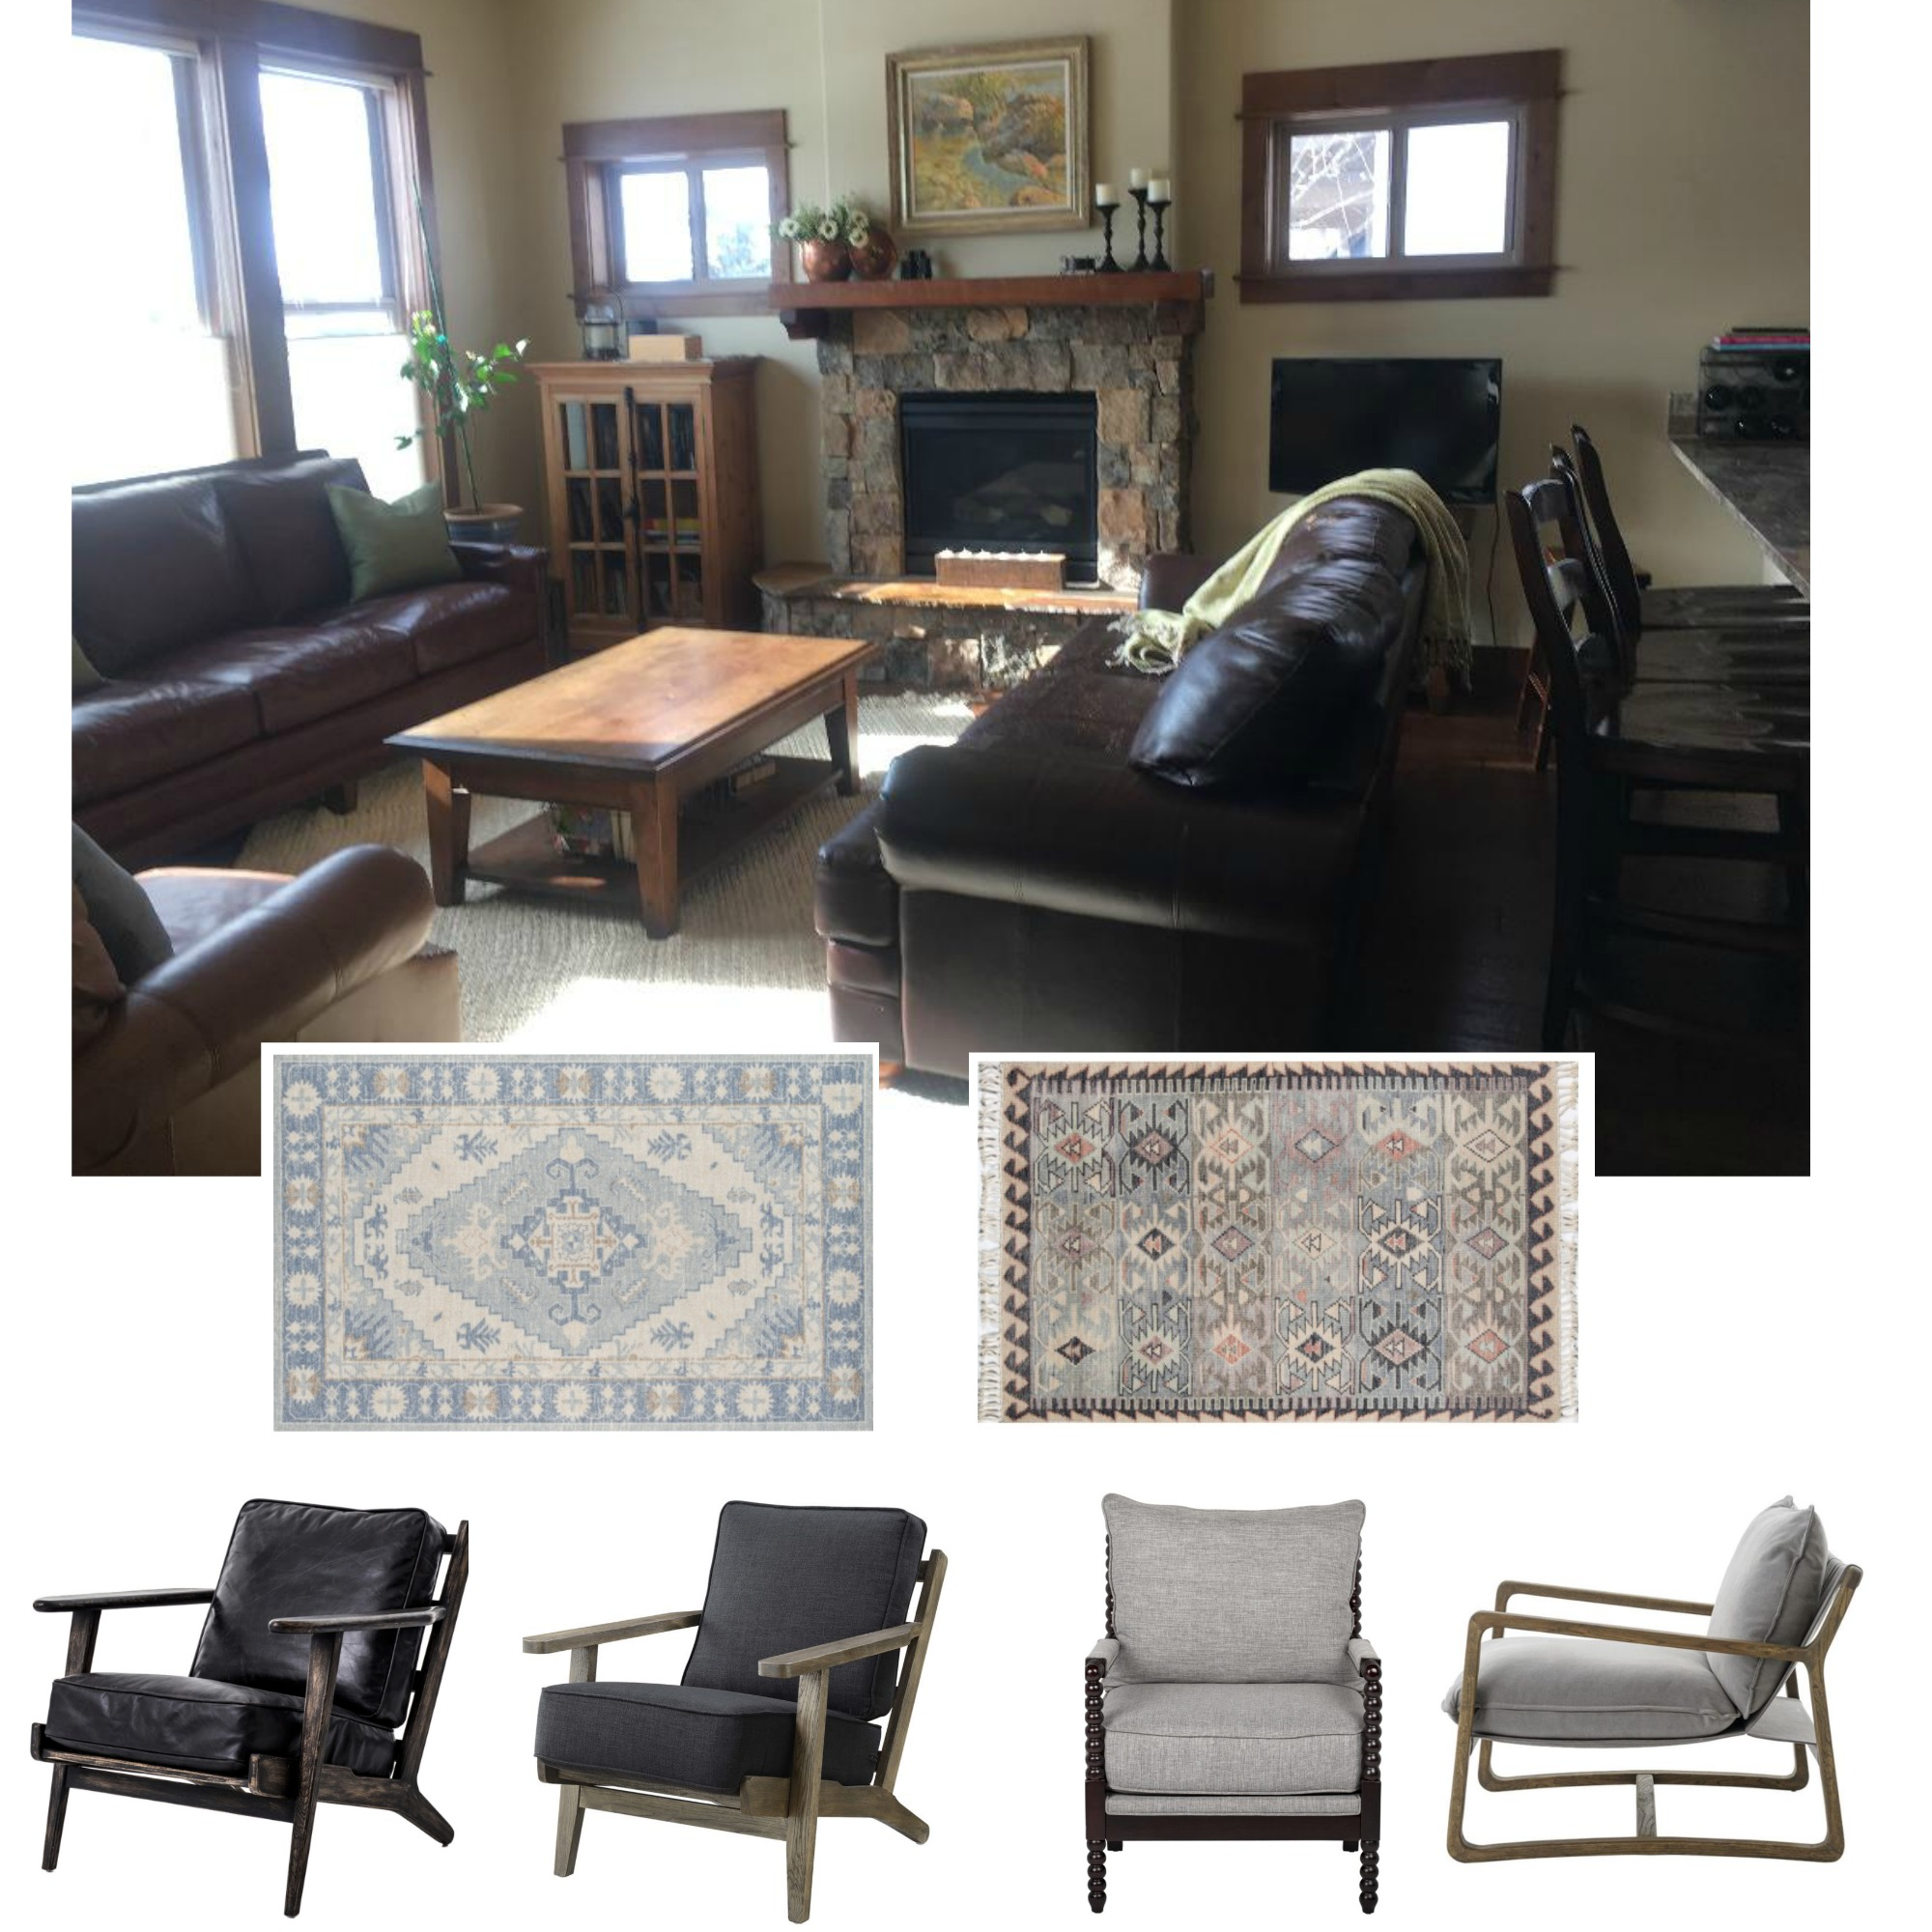 What Accent Chair? Affordable Chairs